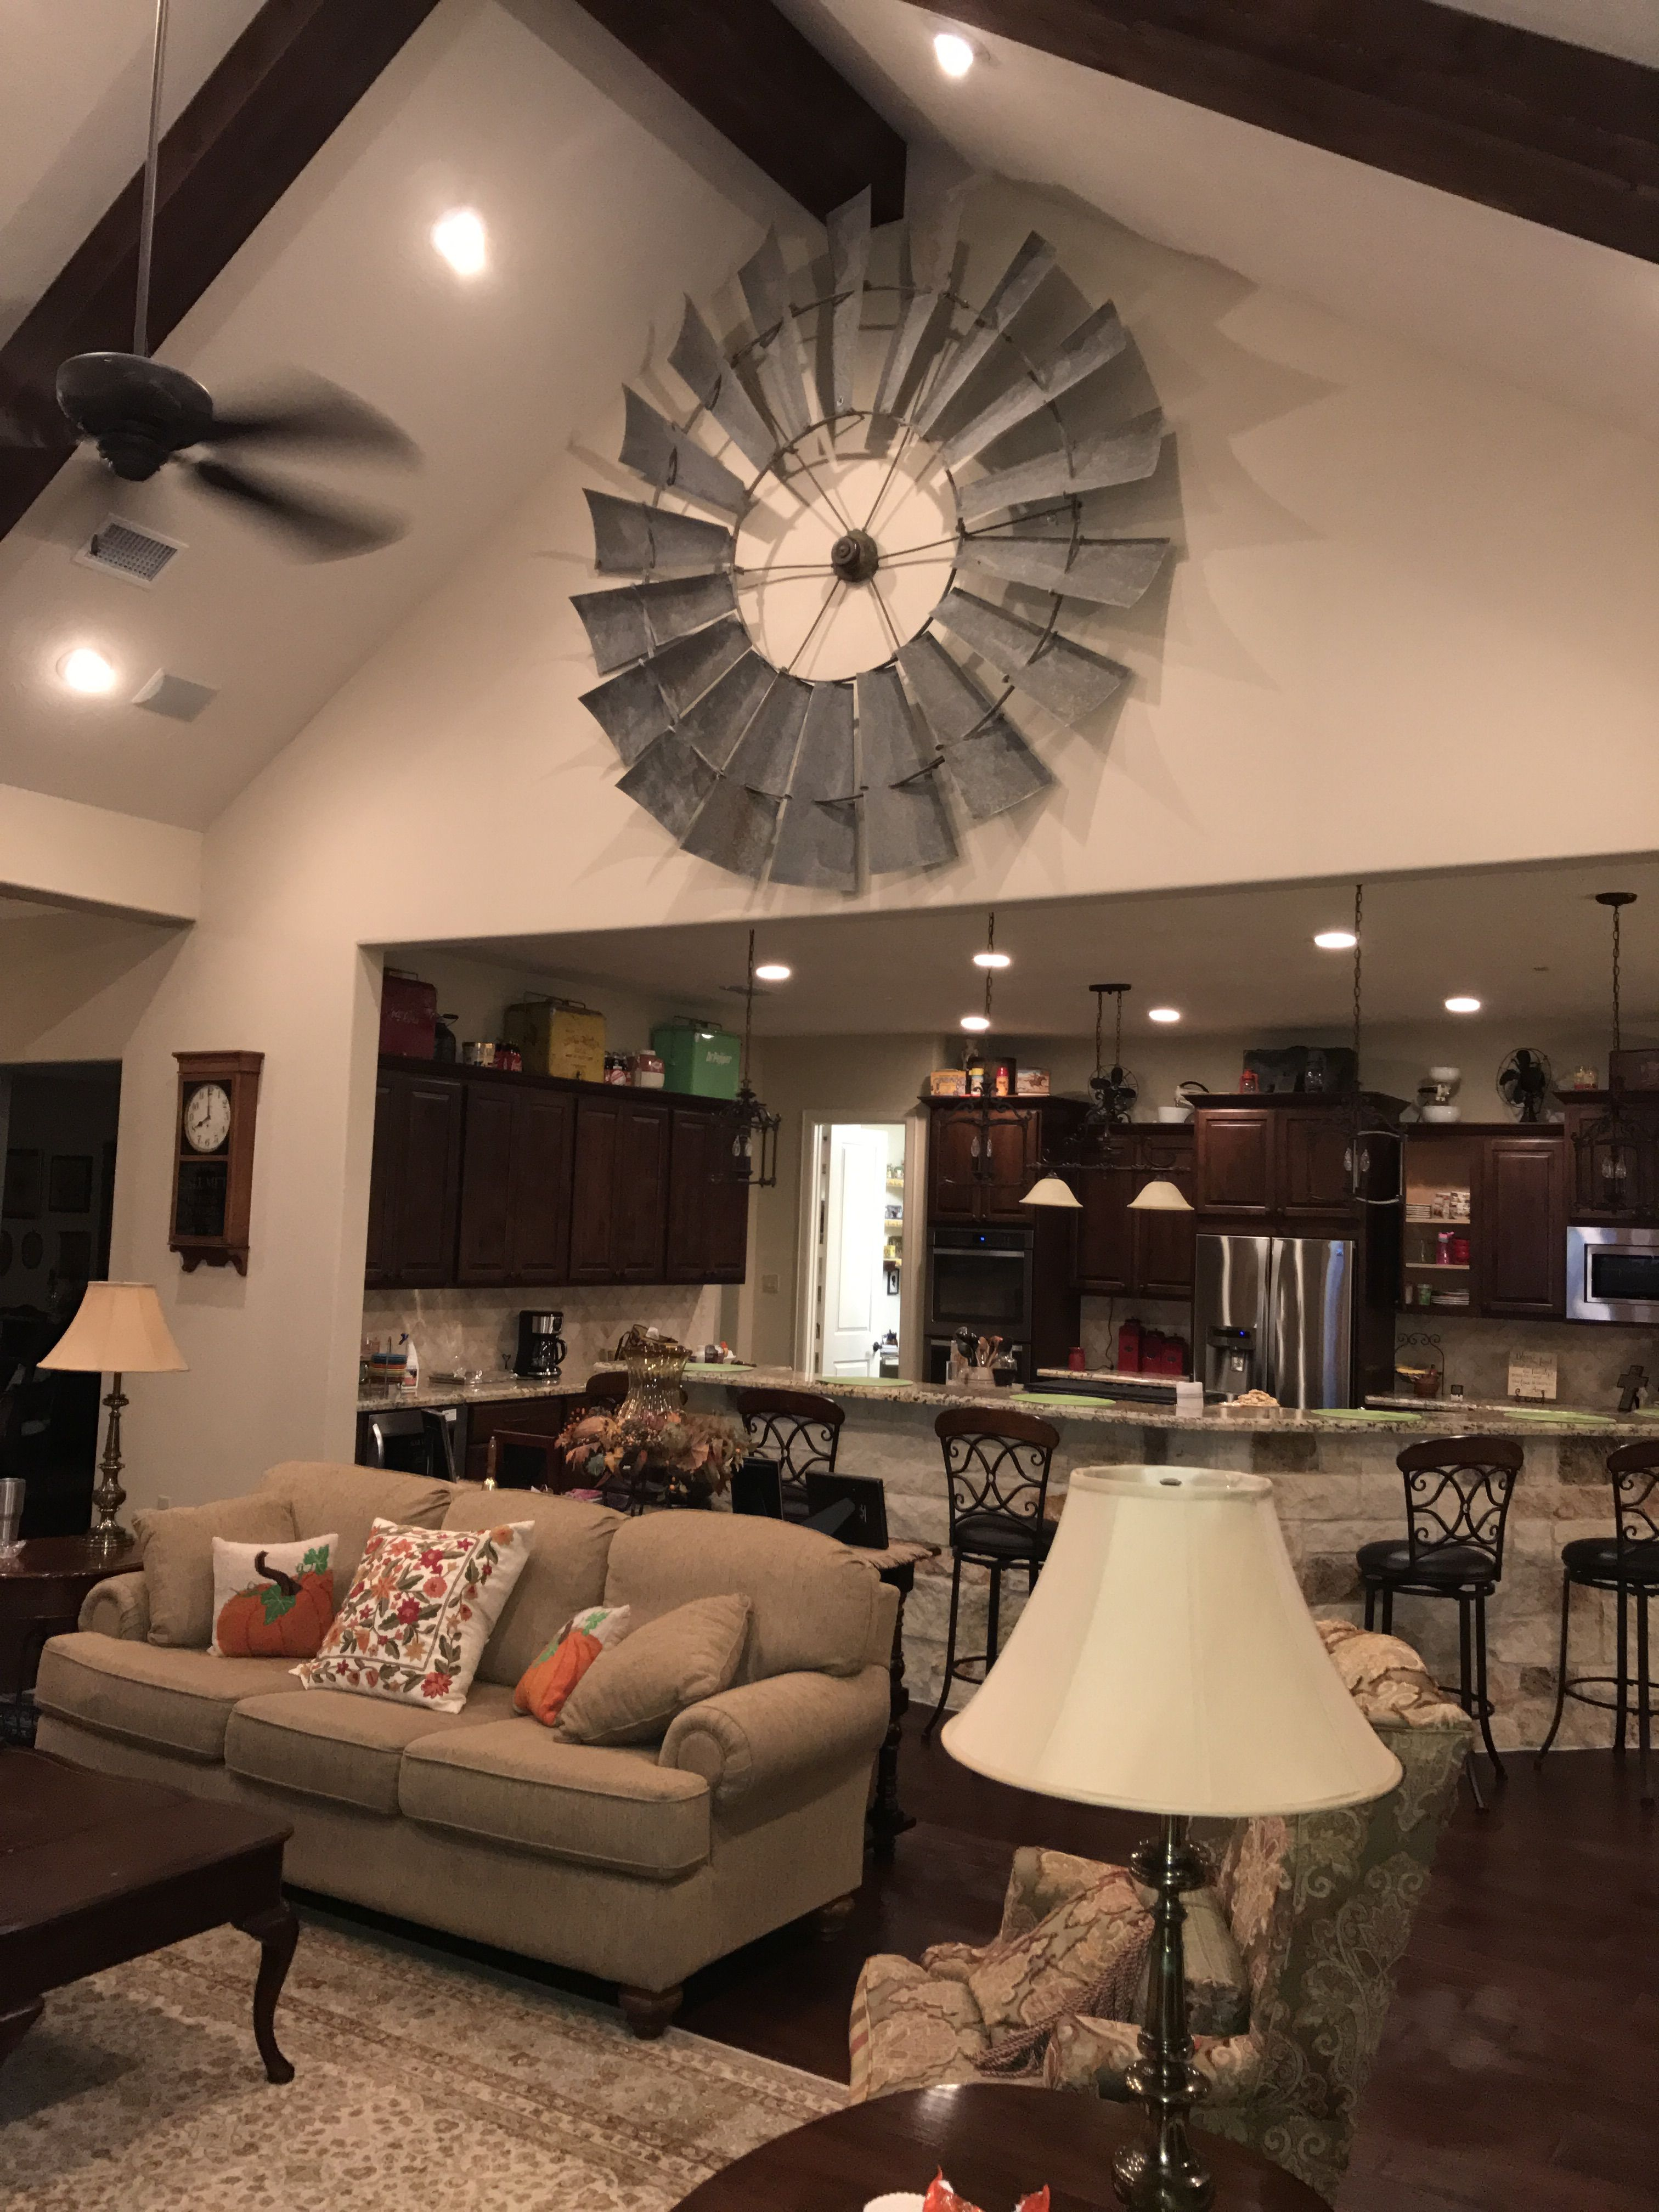 Vintage Windmill Fan Blade Added Accent To Blank Wall Home Decor Windmill Wall Decor Farm House Living Room